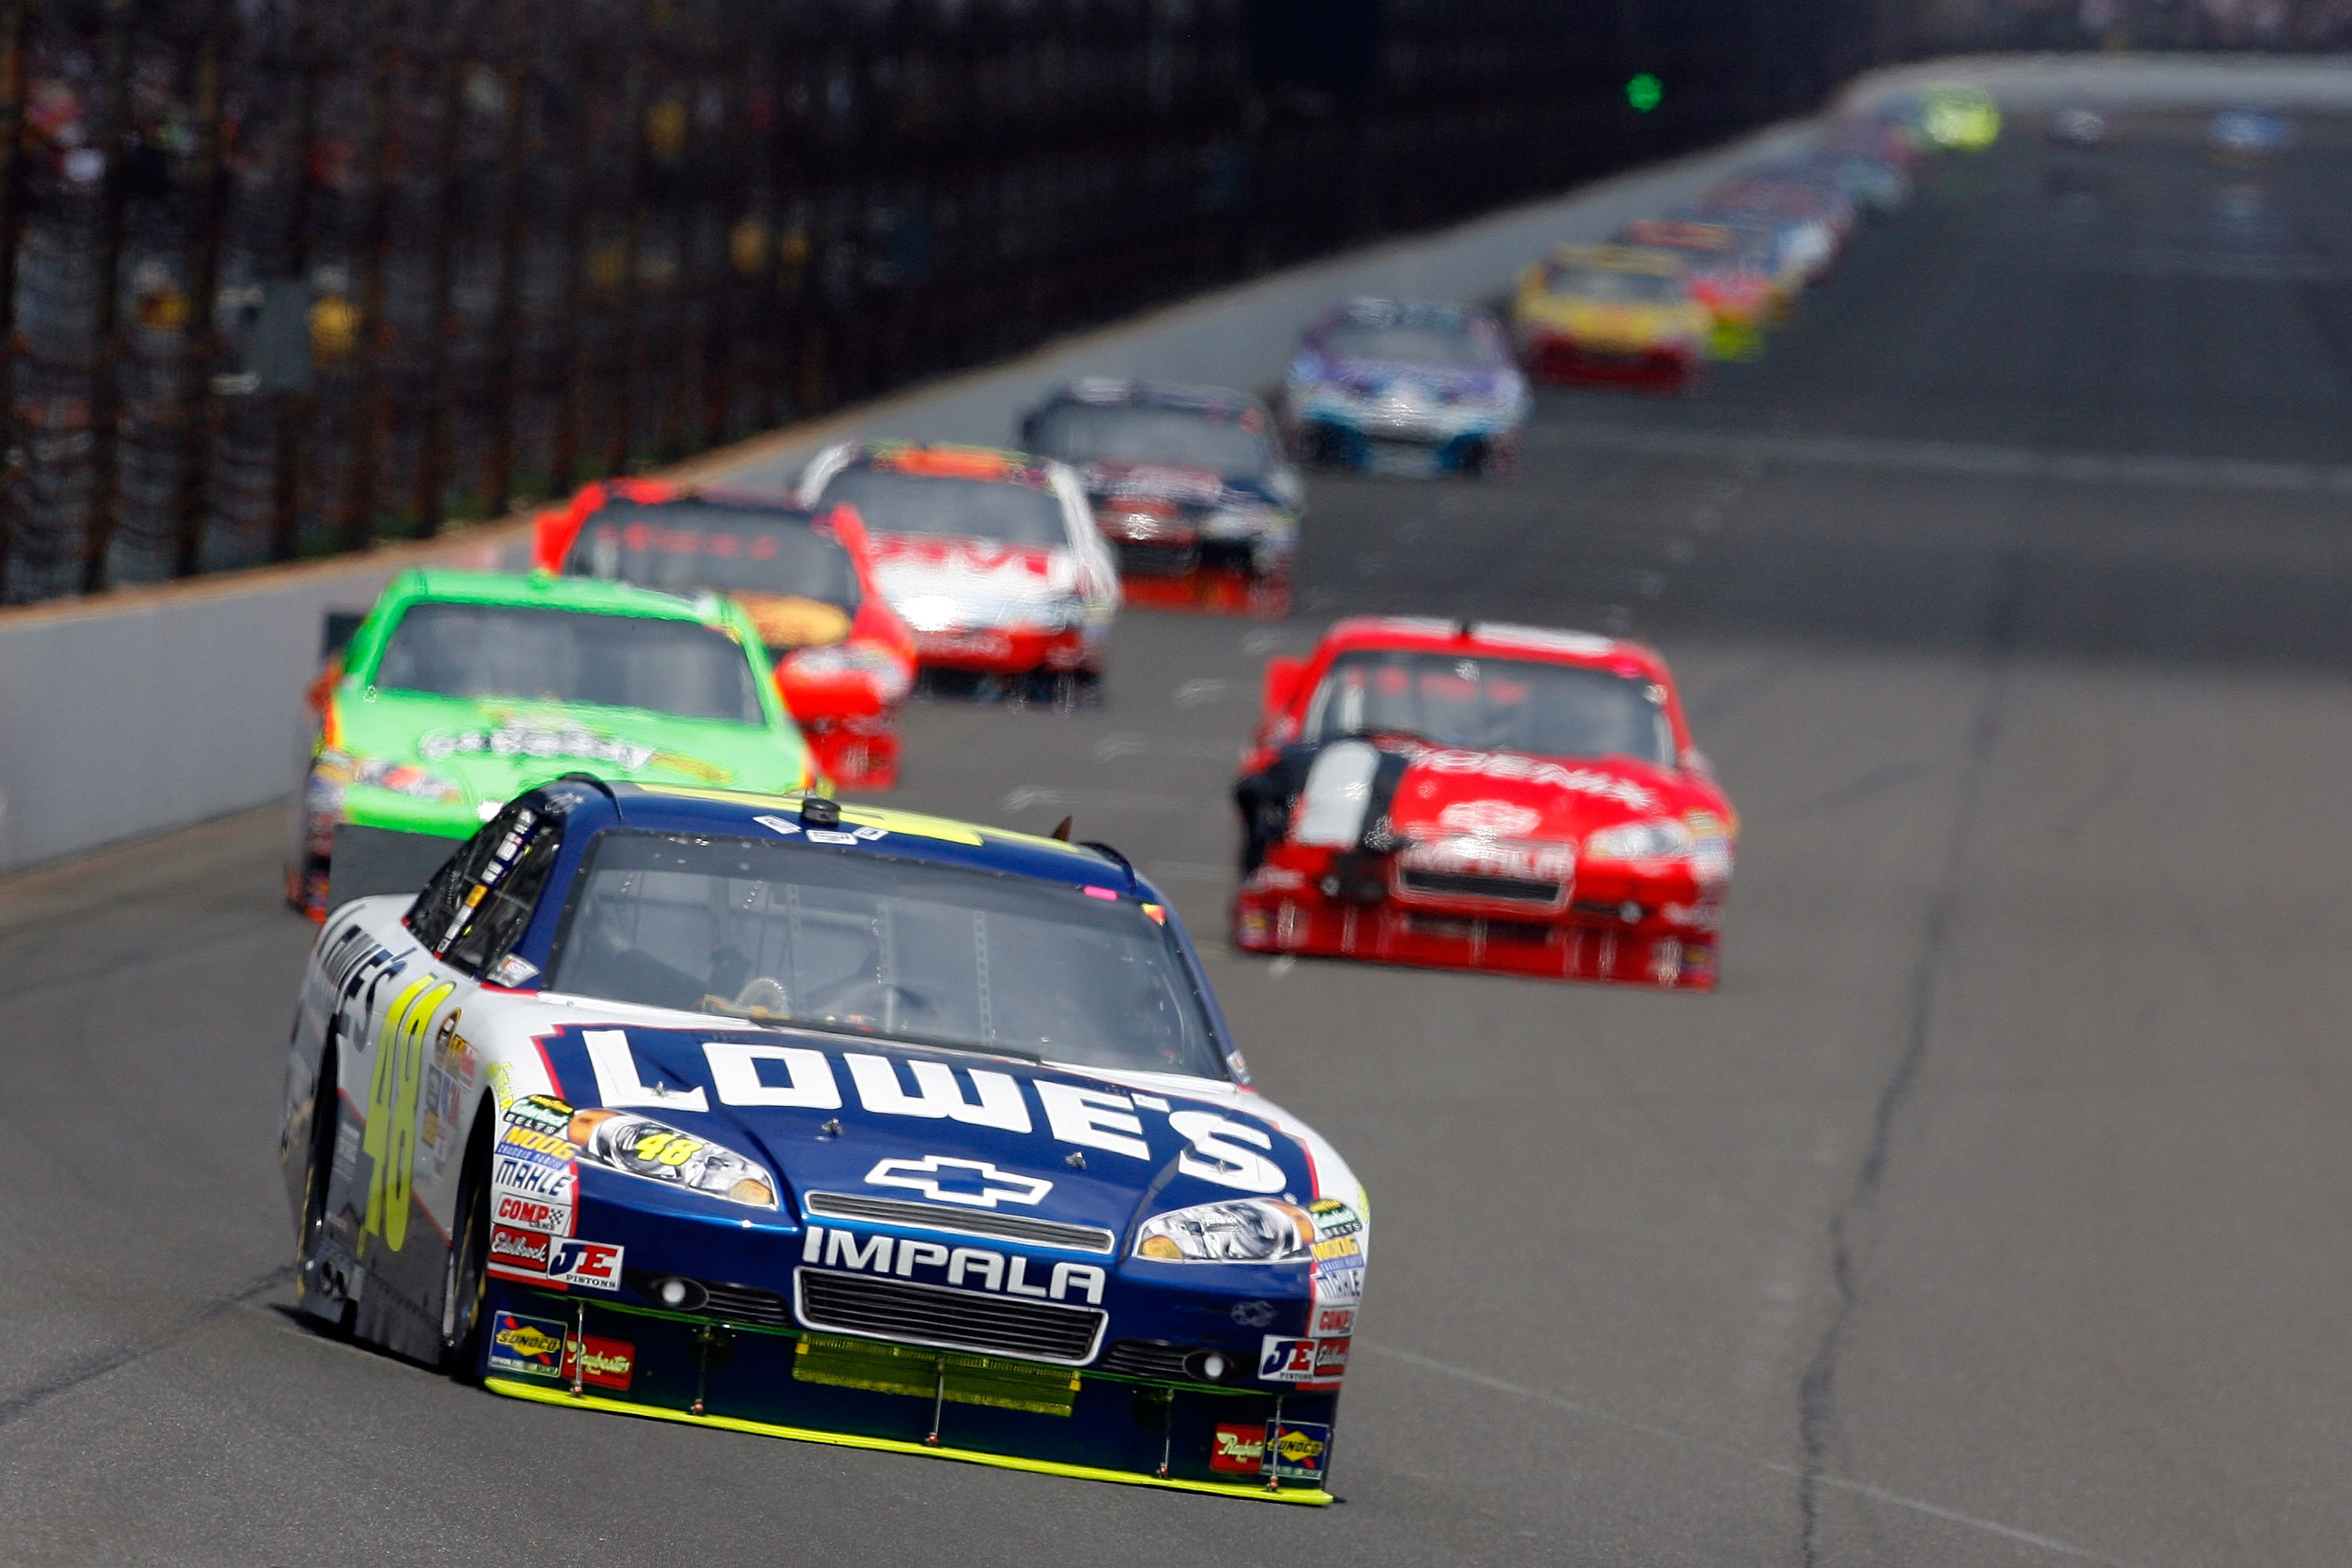 INDIANAPOLIS - JULY 25:  Jimmie Johnson, driver of the #48 Lowe's Chevrolet, leads a pack of cars during the NASCAR Sprint Cup Series Brickyard 400 at Indianapolis Motor Speedway on July 25, 2010 in Indianapolis, Indiana.  (Photo by Tom Pennington/Getty I